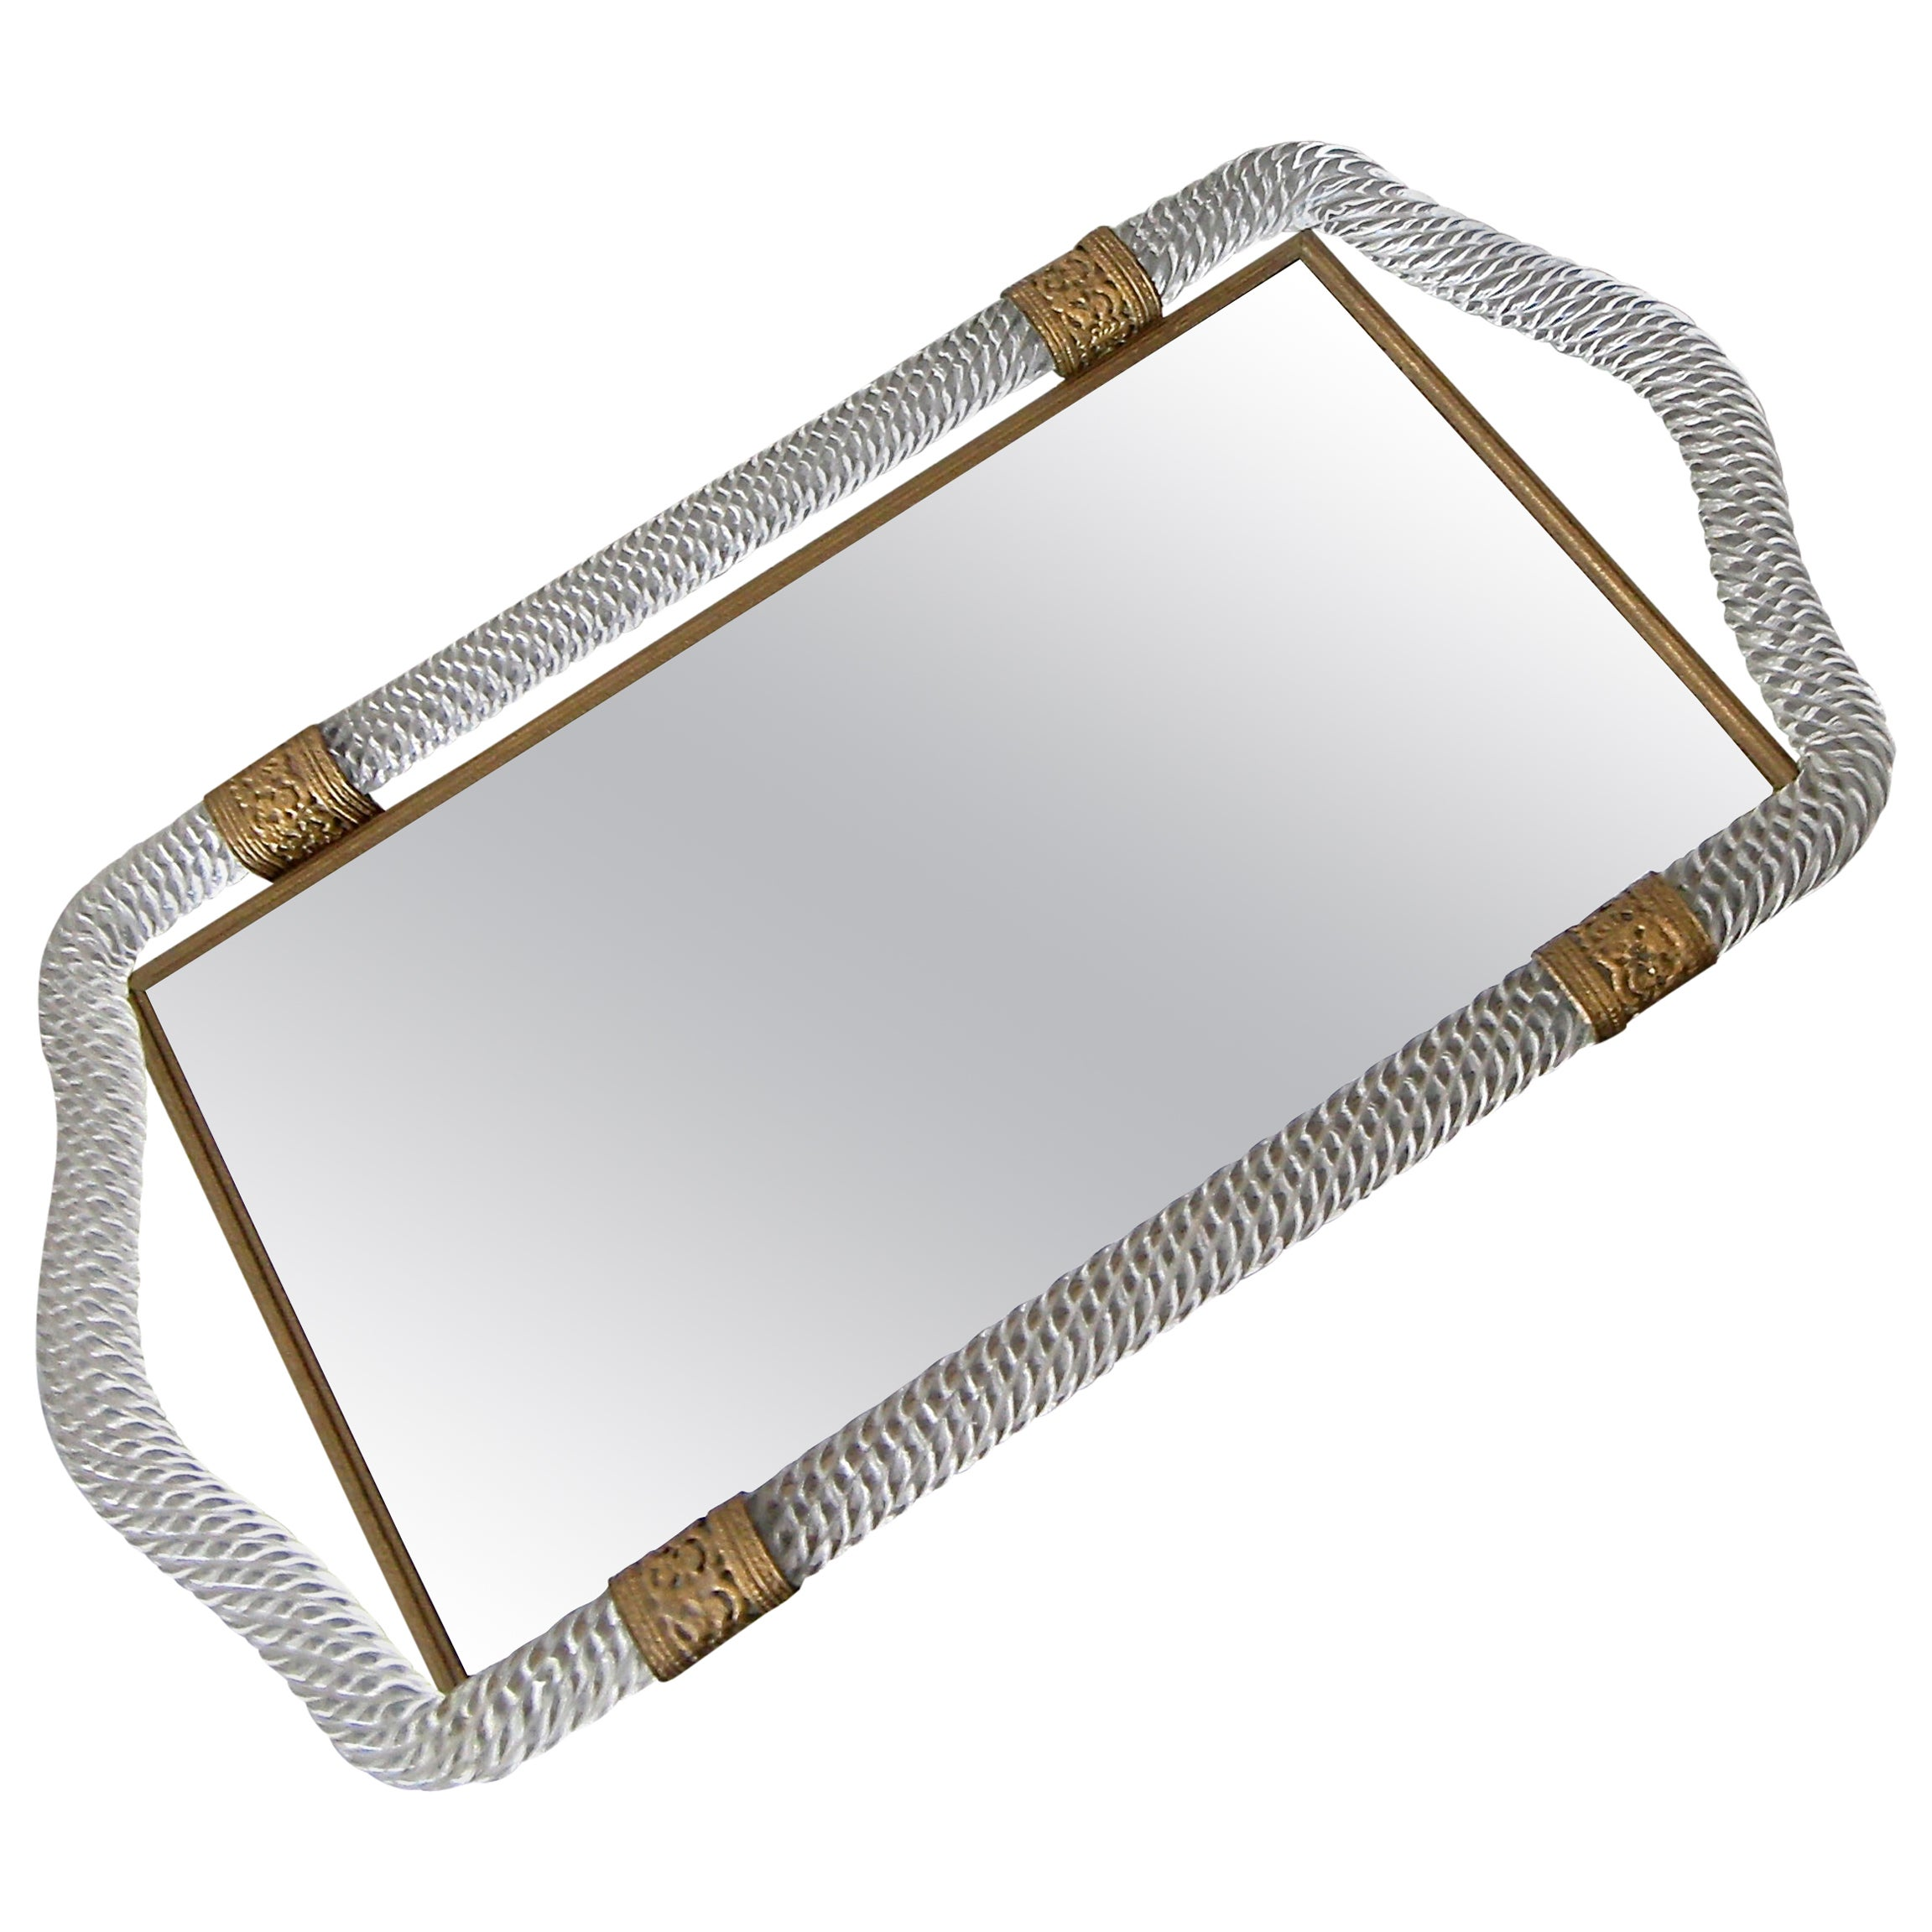 Murano Twisted Rope Glass Vanity Tray